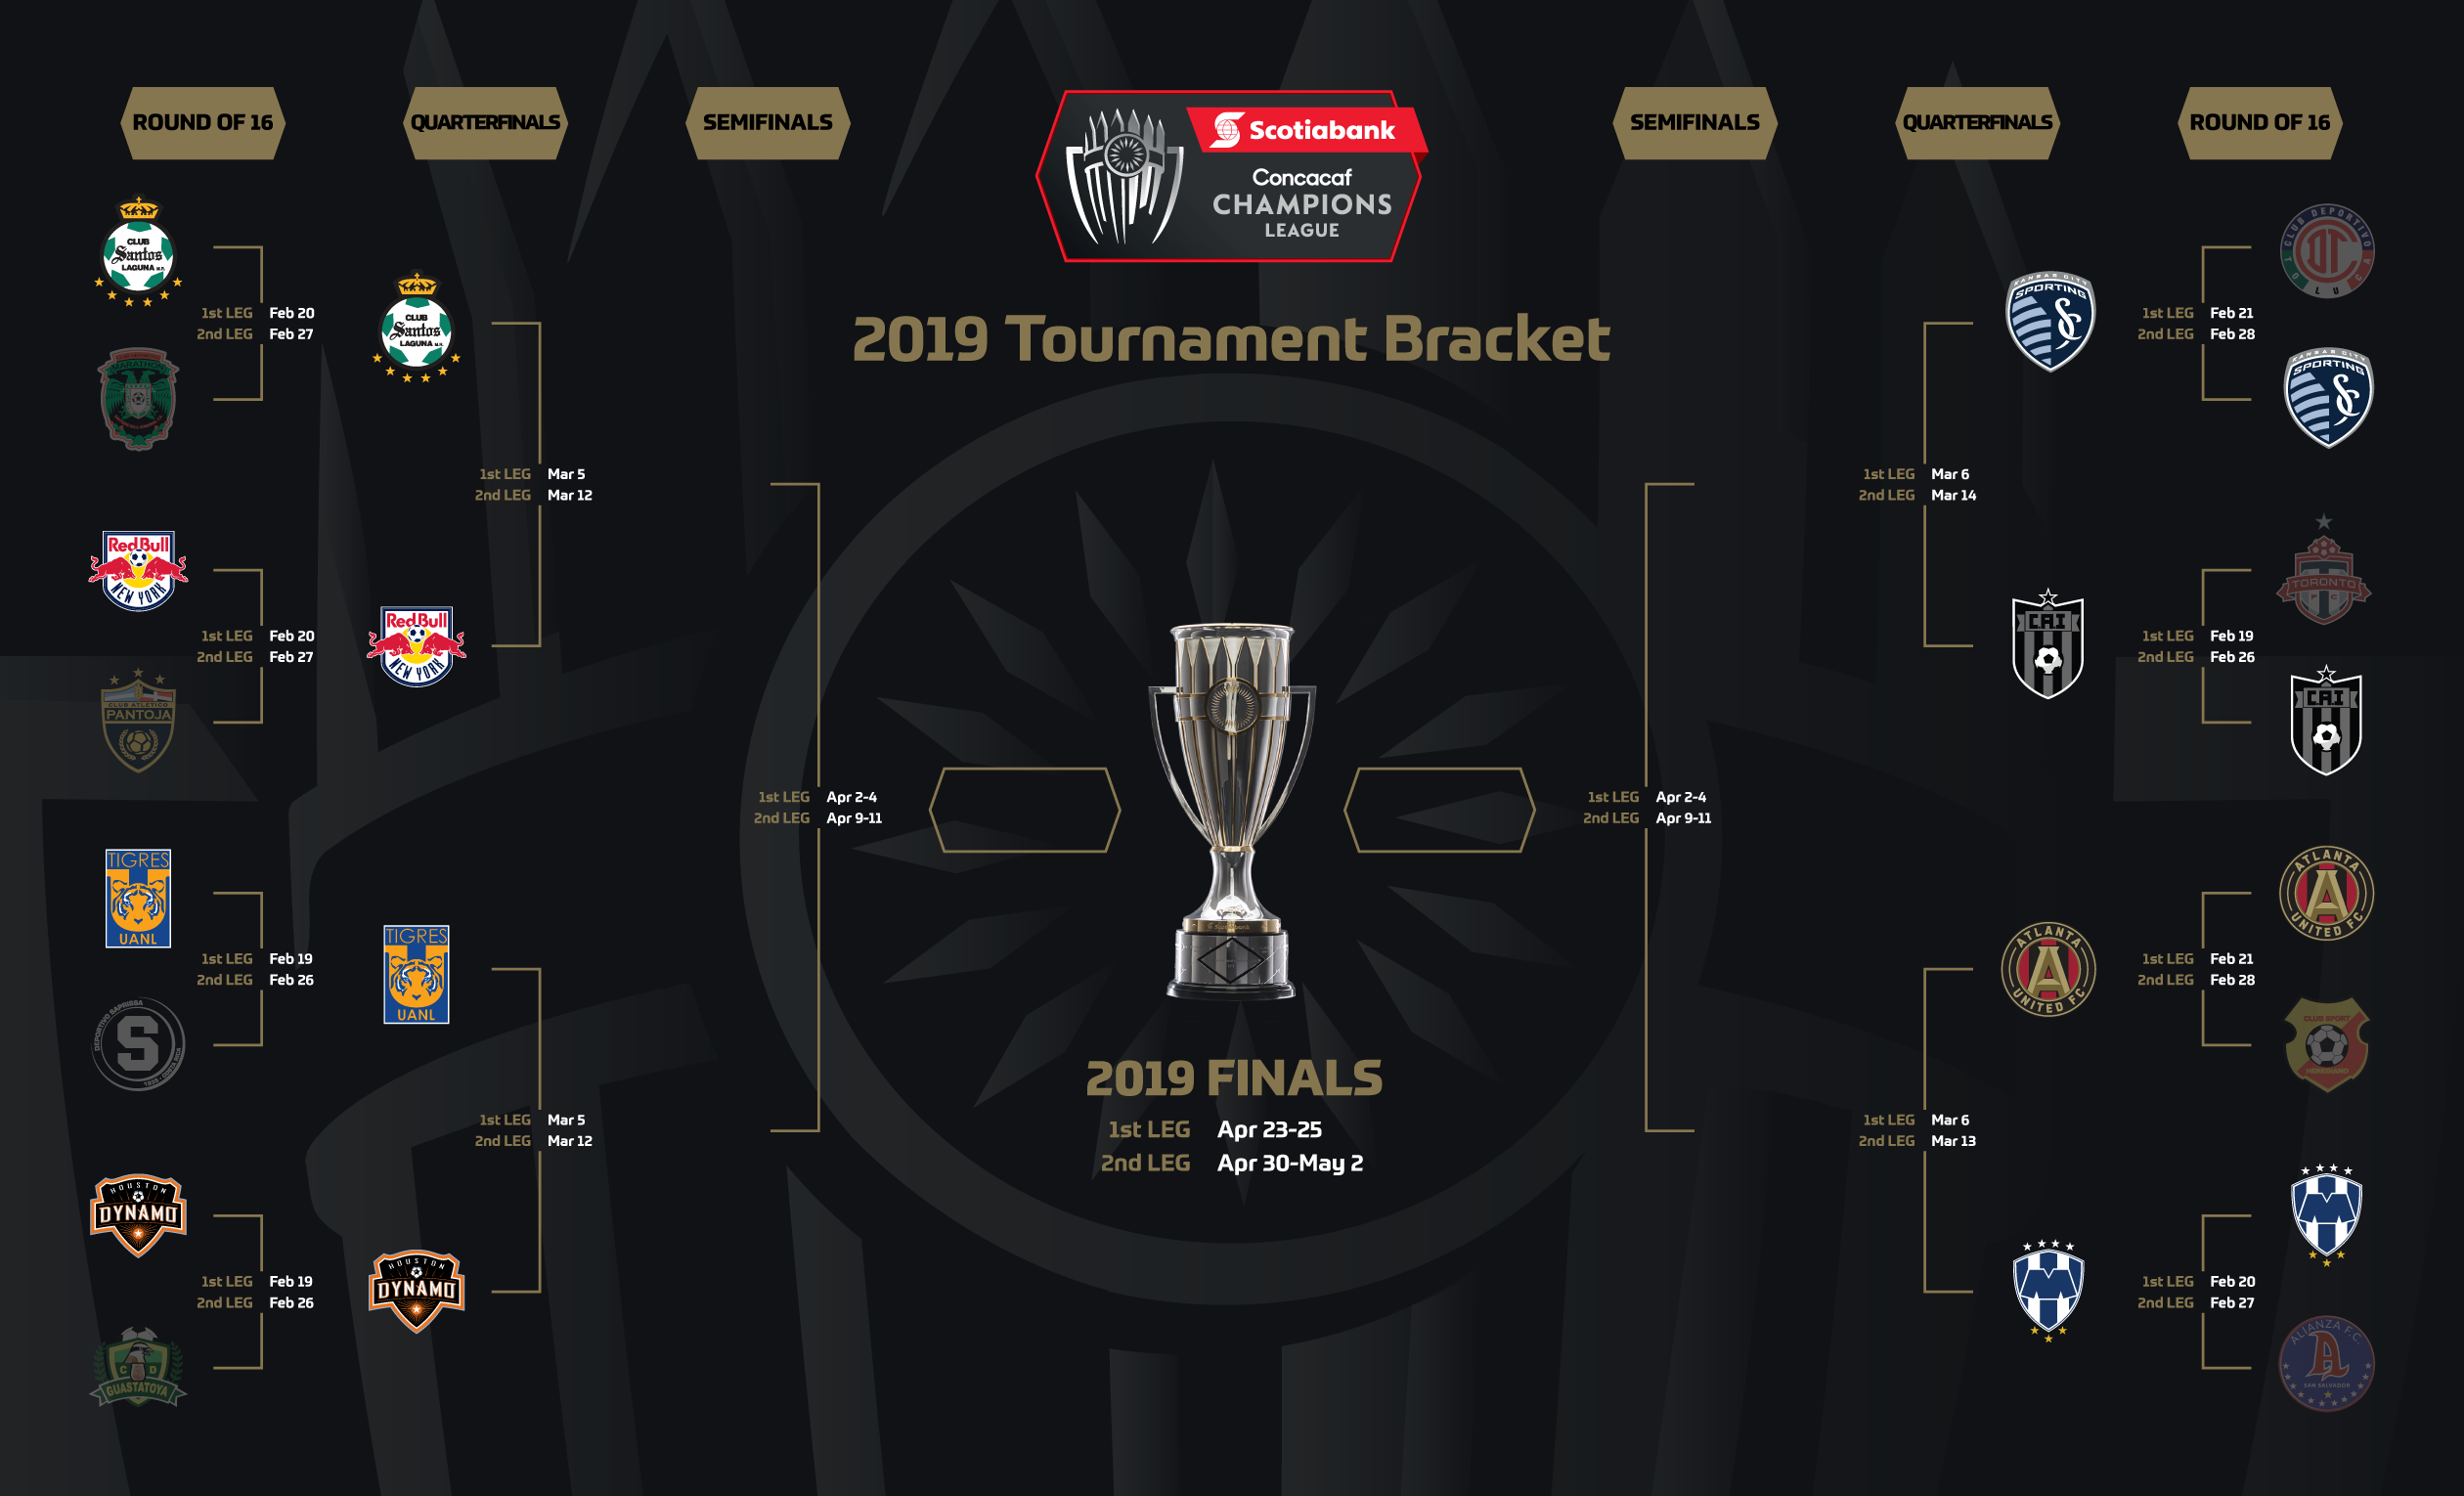 2019 Scotiabank Concacaf Champions League Quarterfinal Matchups and Schedule Confirmed